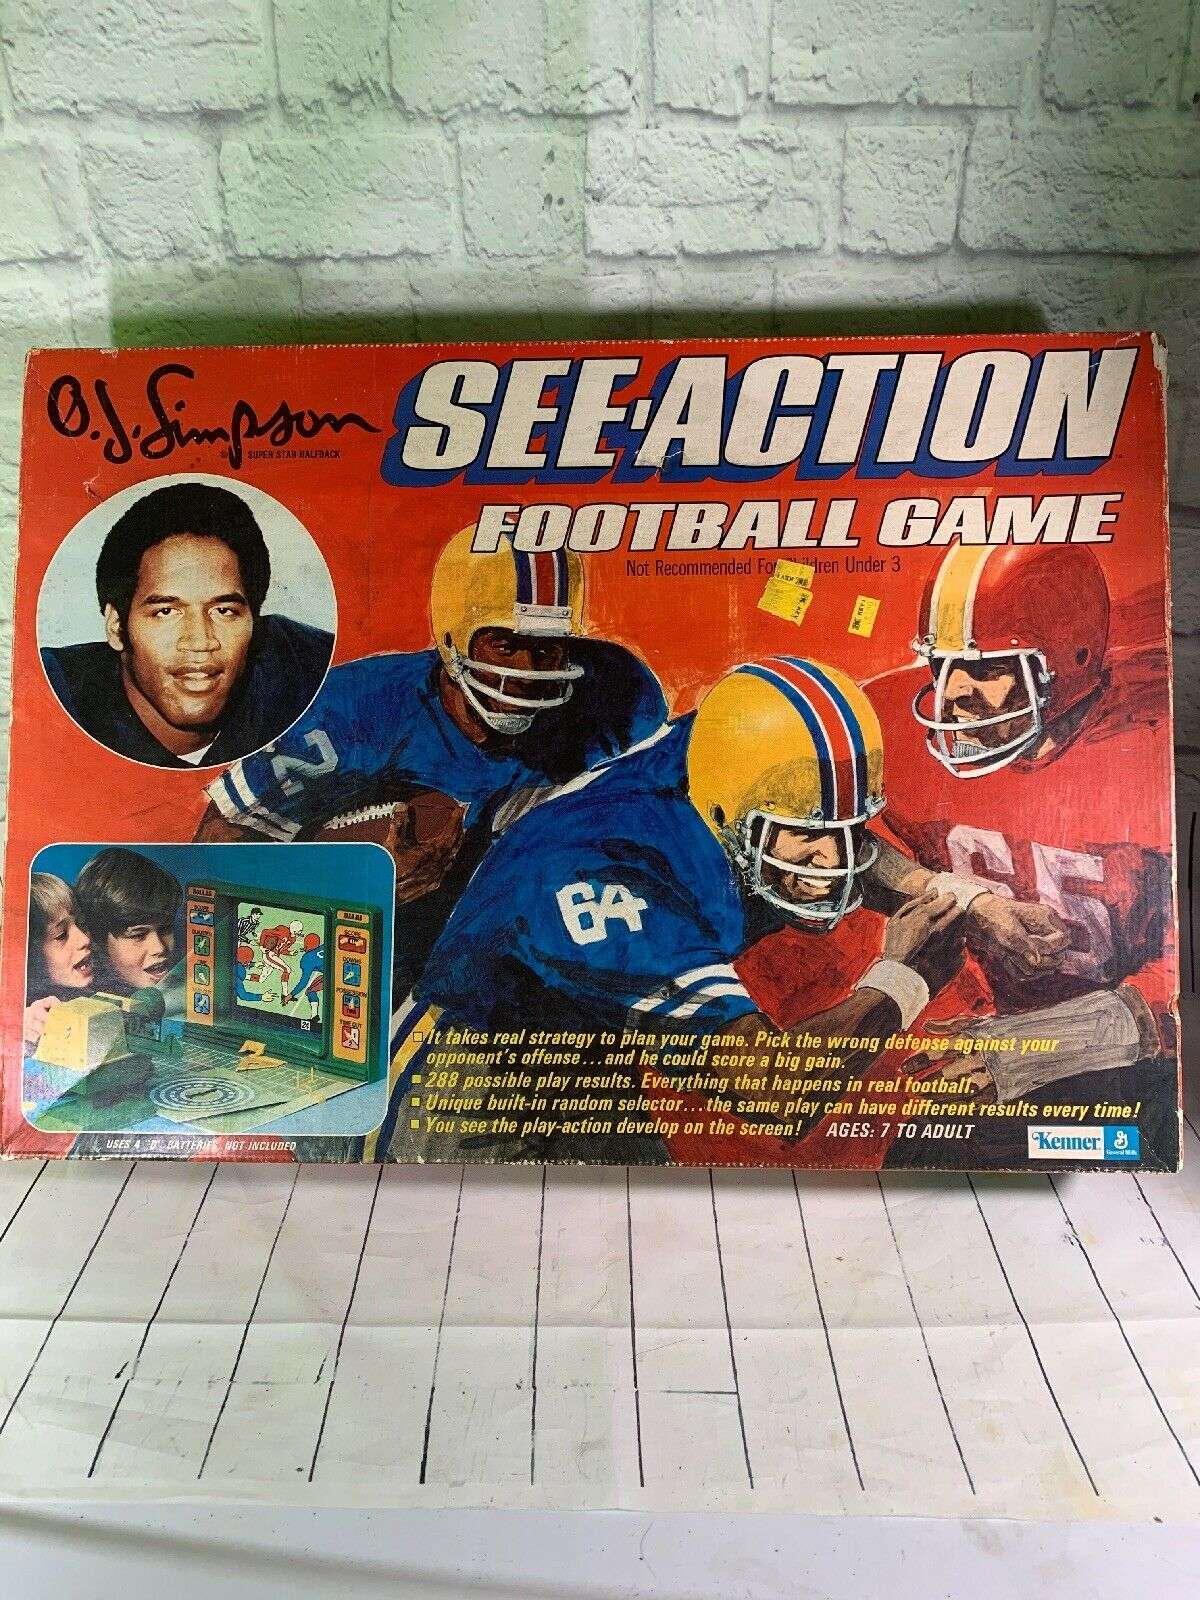 Kenner O.J. SIMPSON See Action Football Game Rare Item